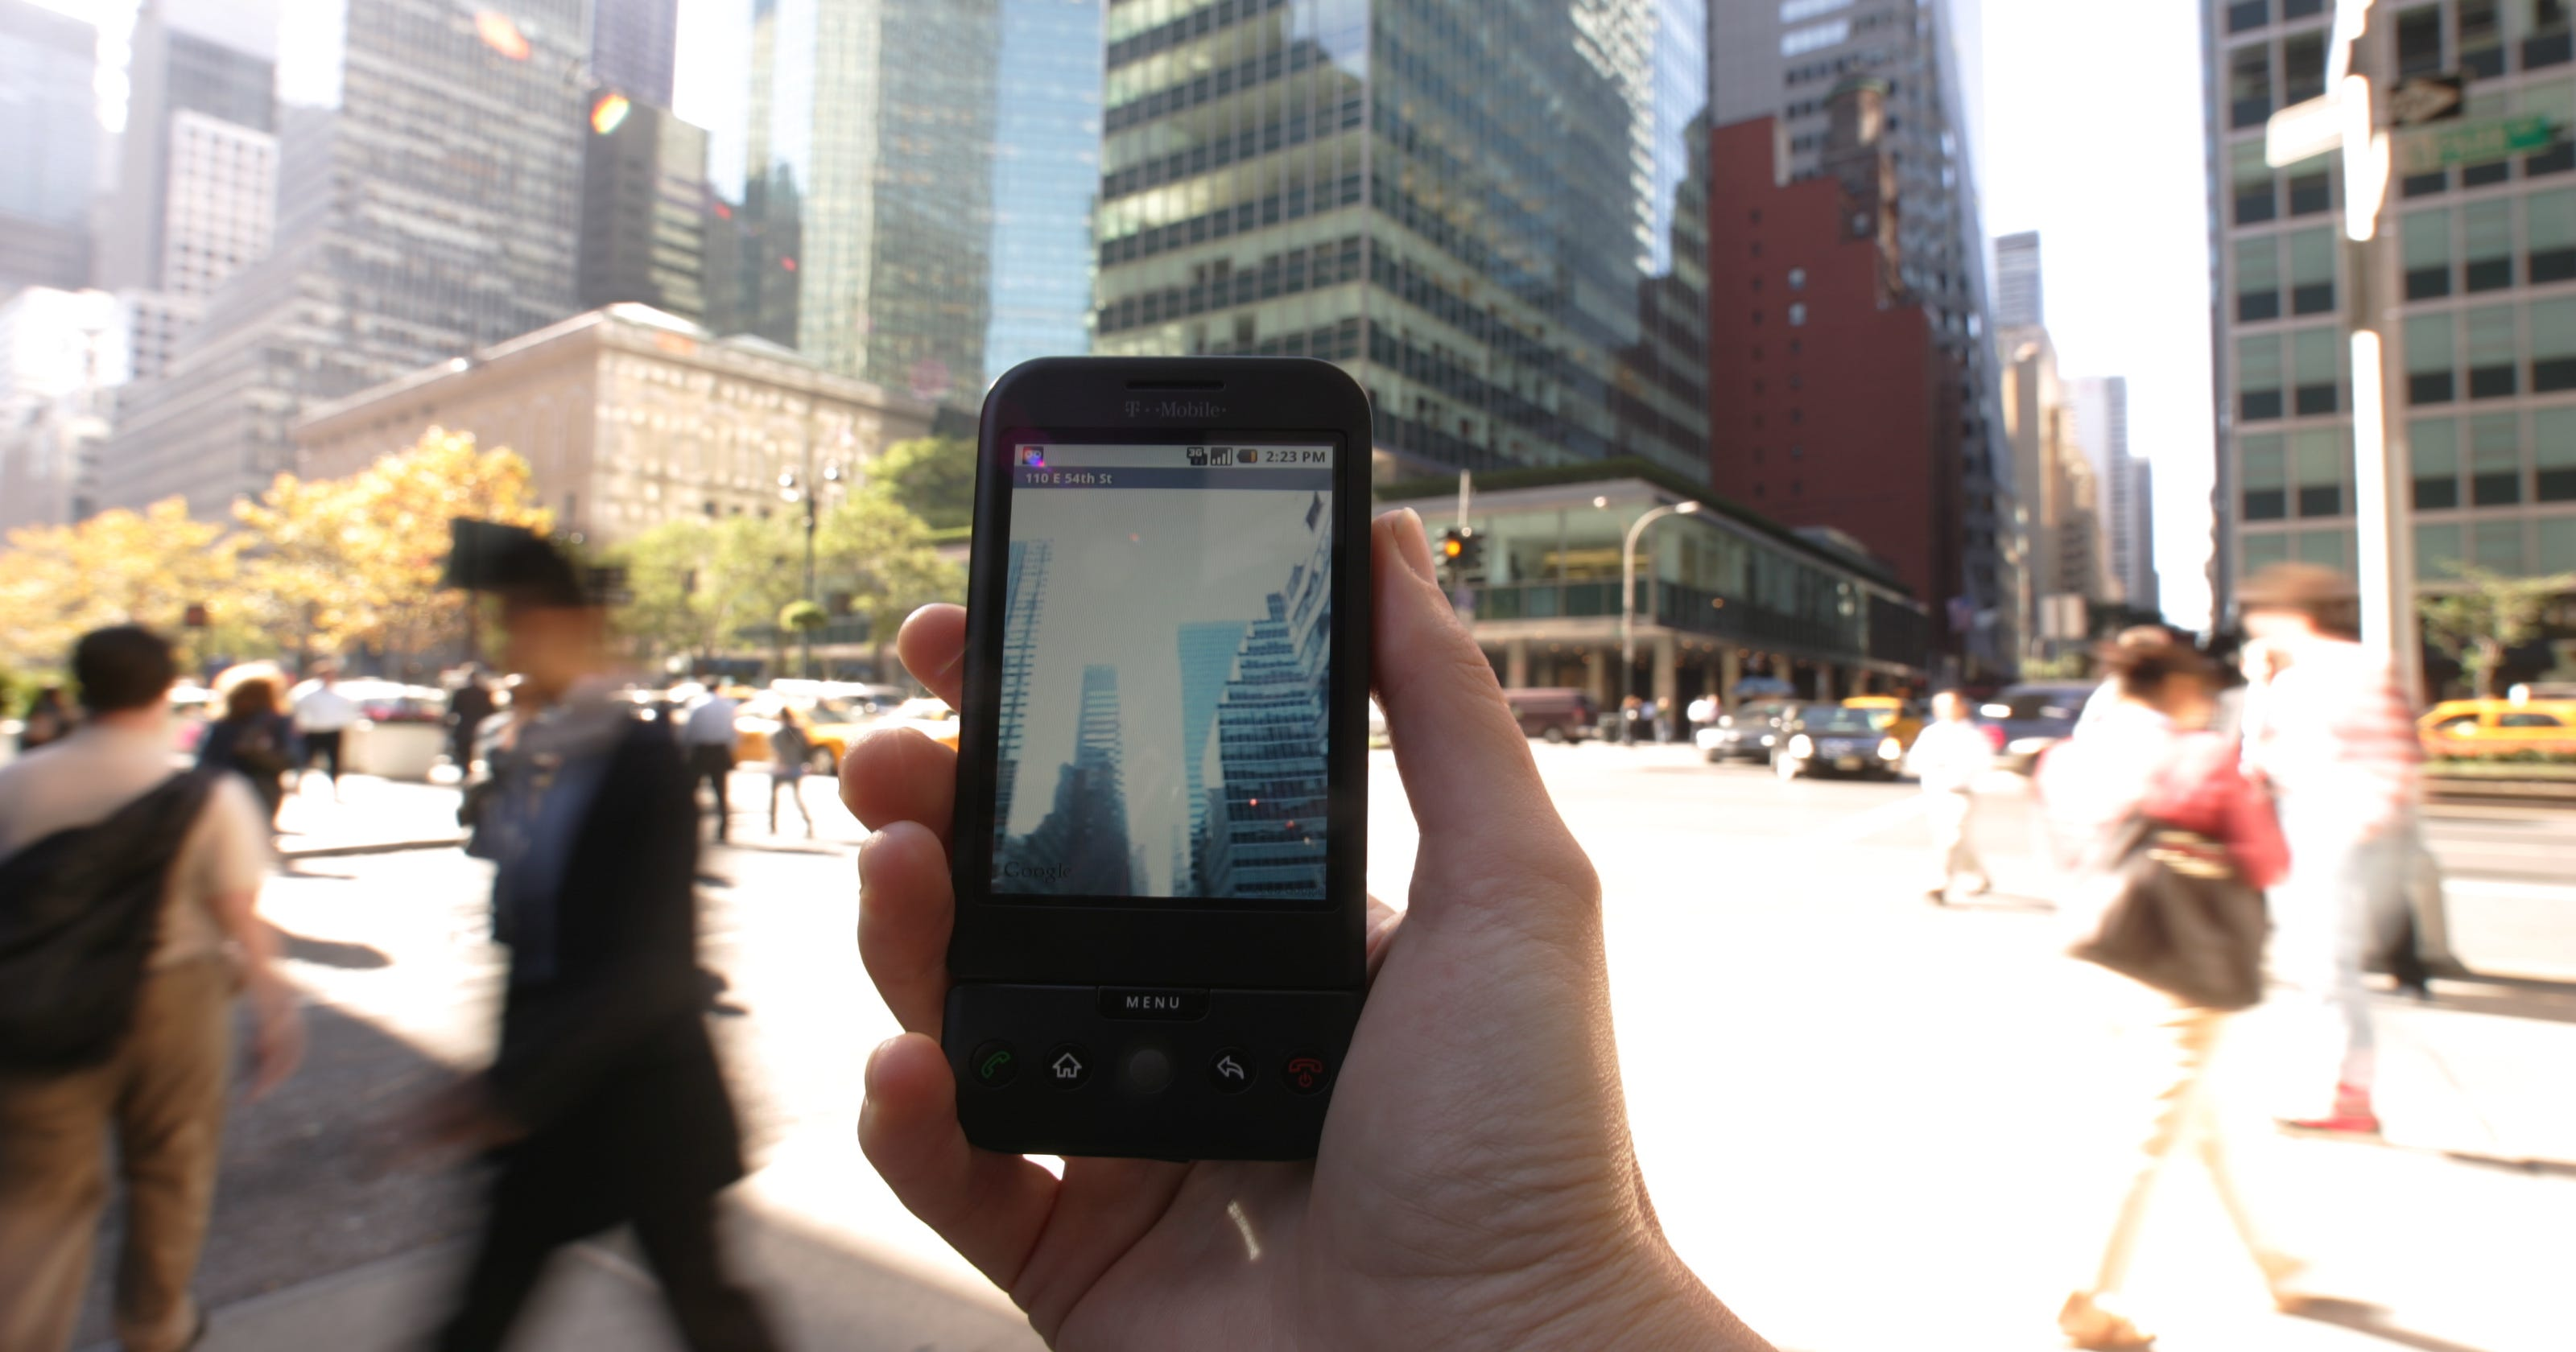 Q&A: How do you stop location tracking?